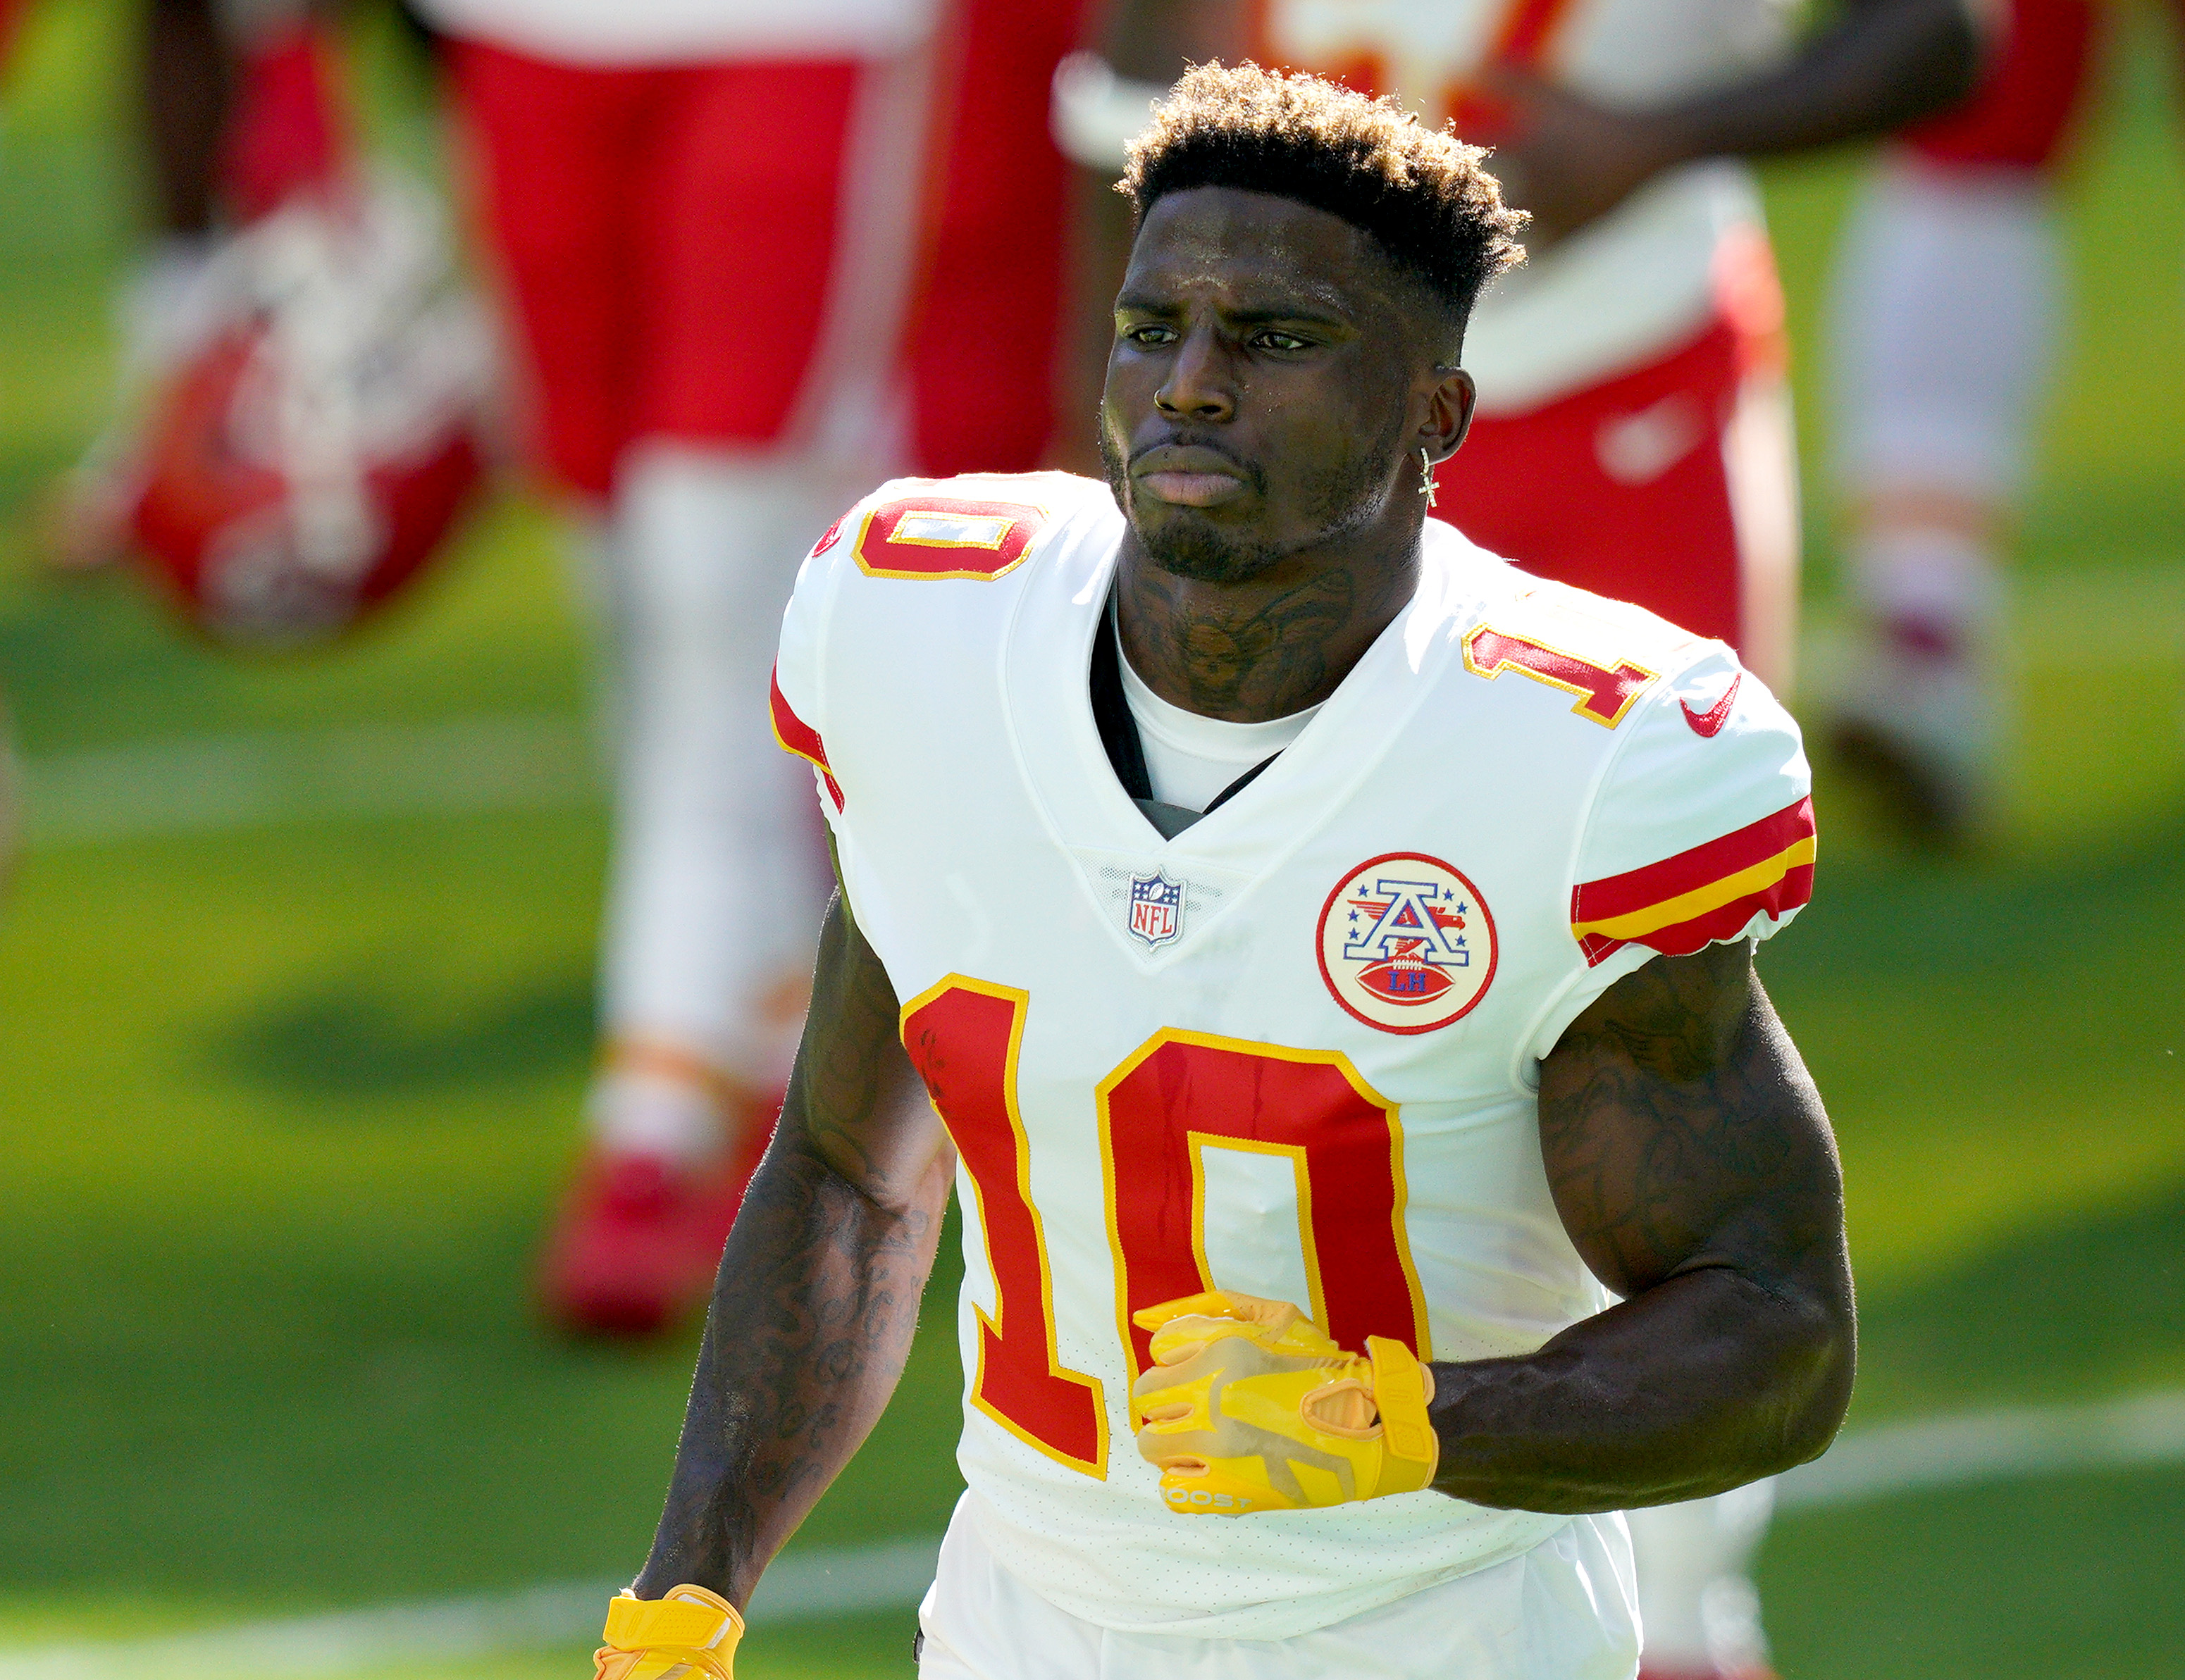 Tyreek Hill of the Kansas City Chiefs warms up